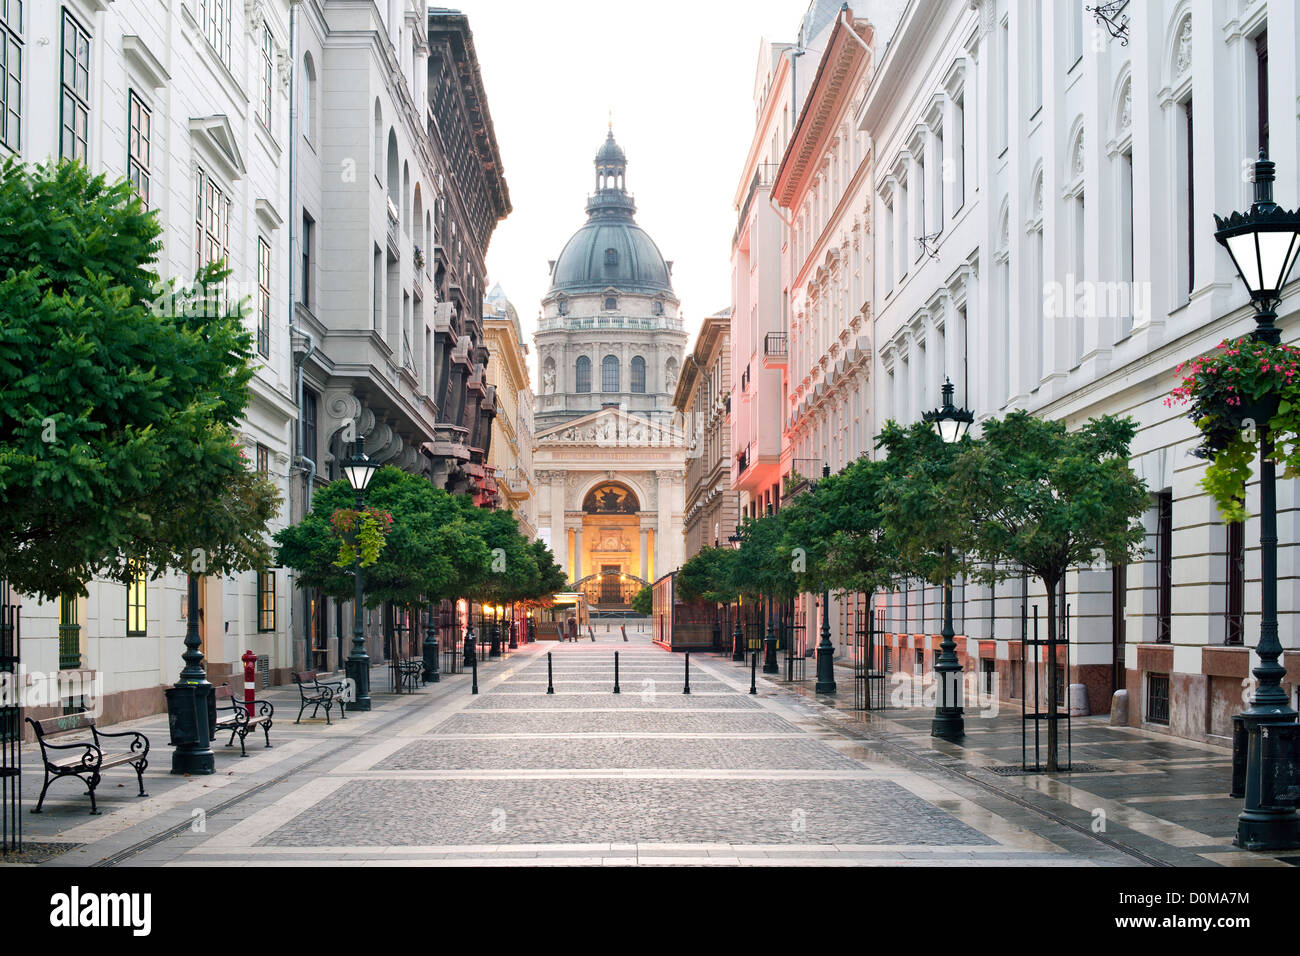 Dawn view of Saint Stephen's Basilica from Zrínyi Utca in Budapest, the capital of Hungary. Stock Photo